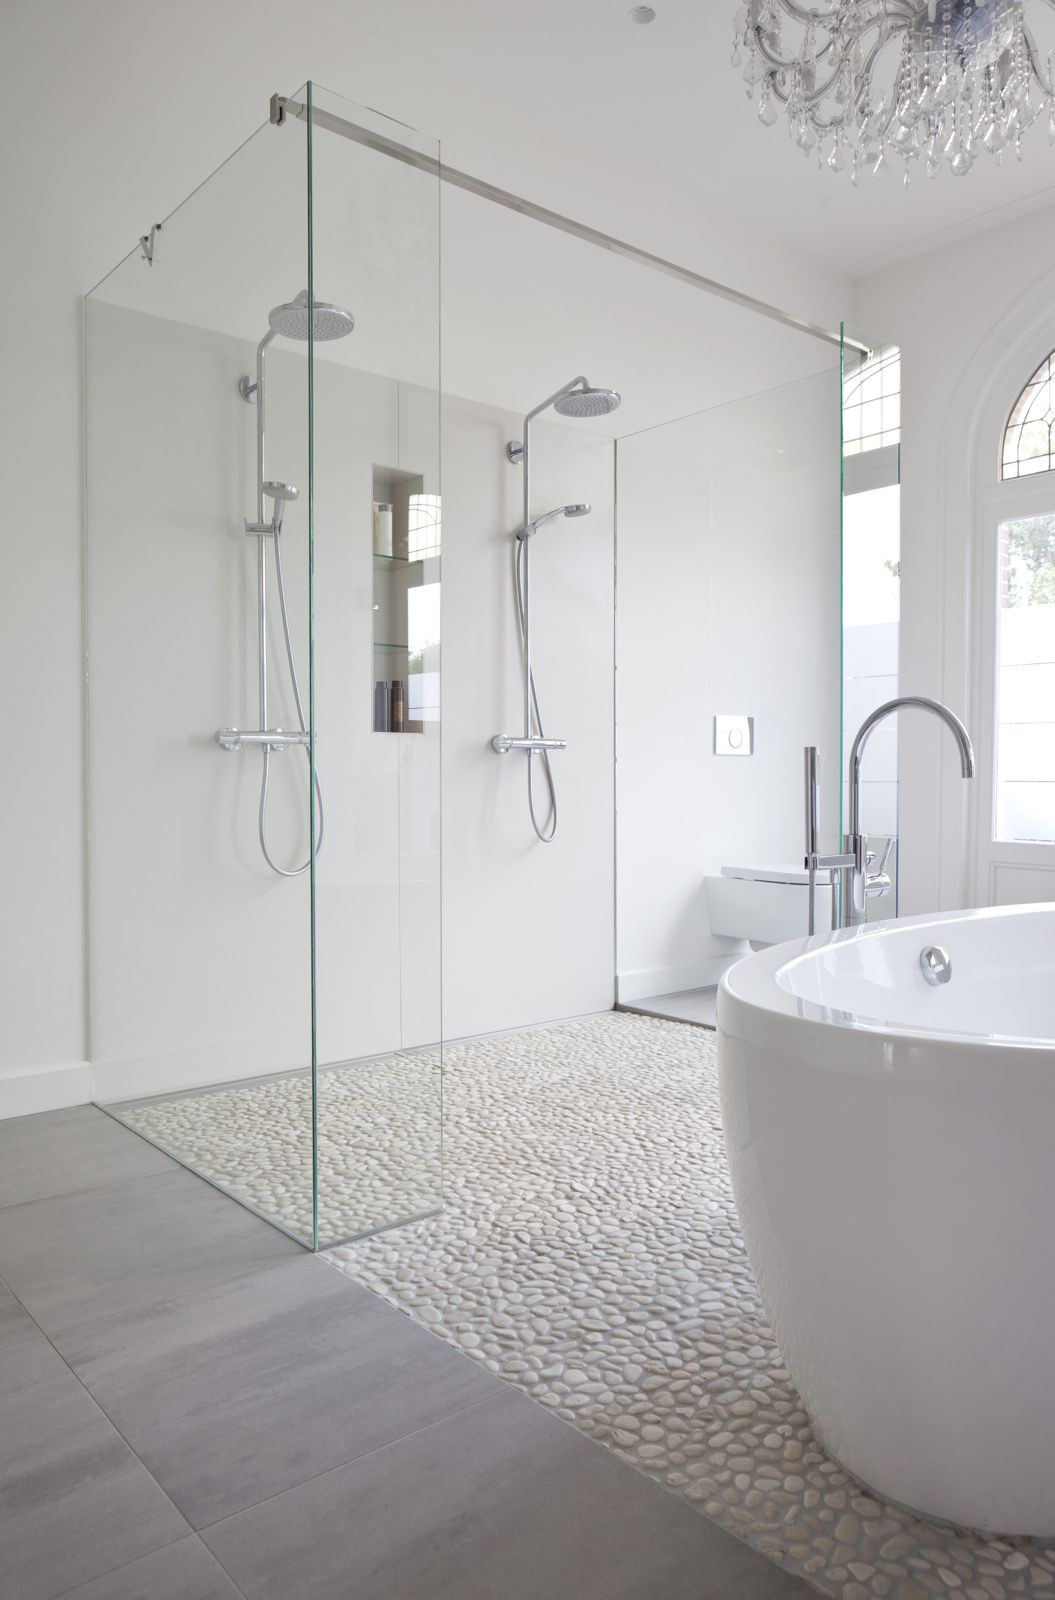 Clean white bathroom using white pebble tile floor in shower and as on park designs bath towels, park designs curtains, park designs wine cellar, park designs window treatments, park plaid curtains, park curtains clearance, park designs bedding, park designs linens, park designs dinnerware, south park bathroom, park designs christmas, park designs collections, park designs catalog, park designs pantry, park designs swags, park designs rugs, park designs sarasota, park designs beach, park curtains and valances, park designs lamps,